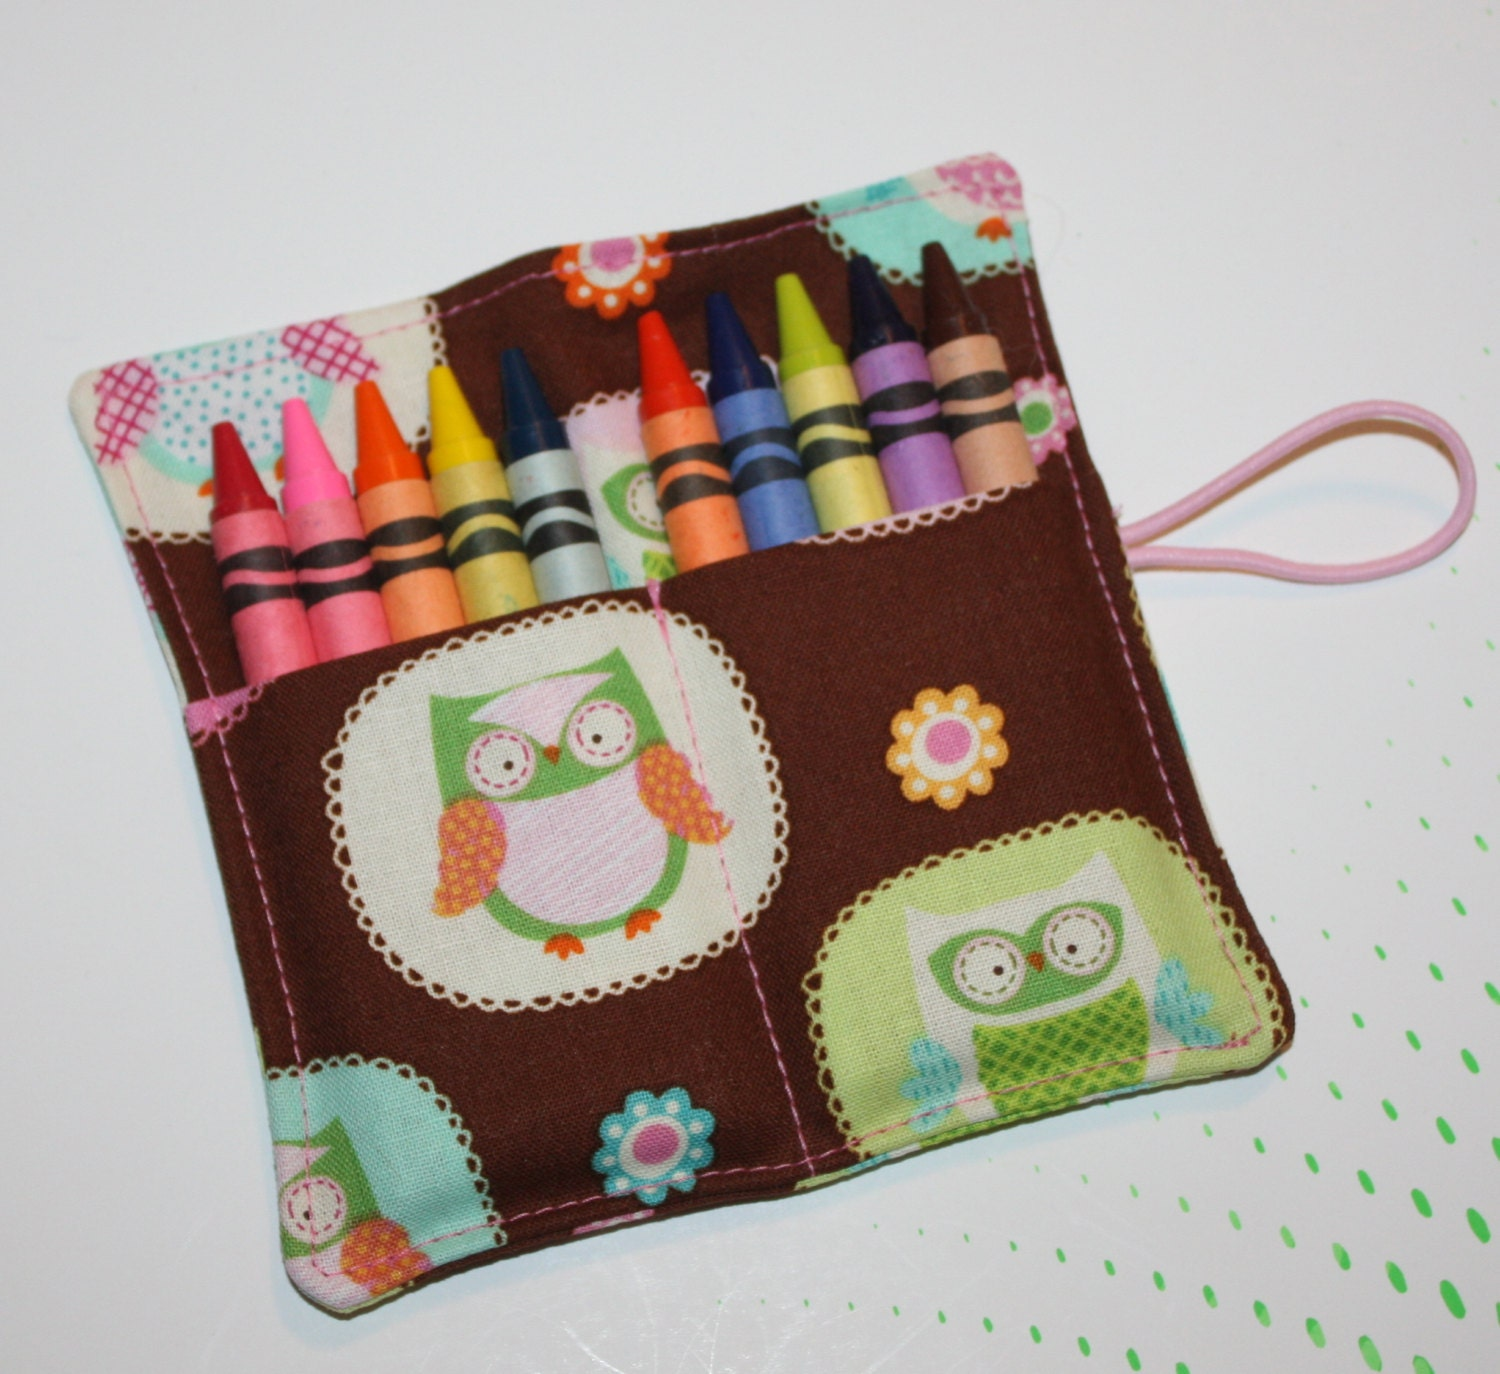 Crayon Roll Sweet Owls Rollup, holds up to 10 Crayons Crayon Roll Party Favors Owls - FrogBlossoms